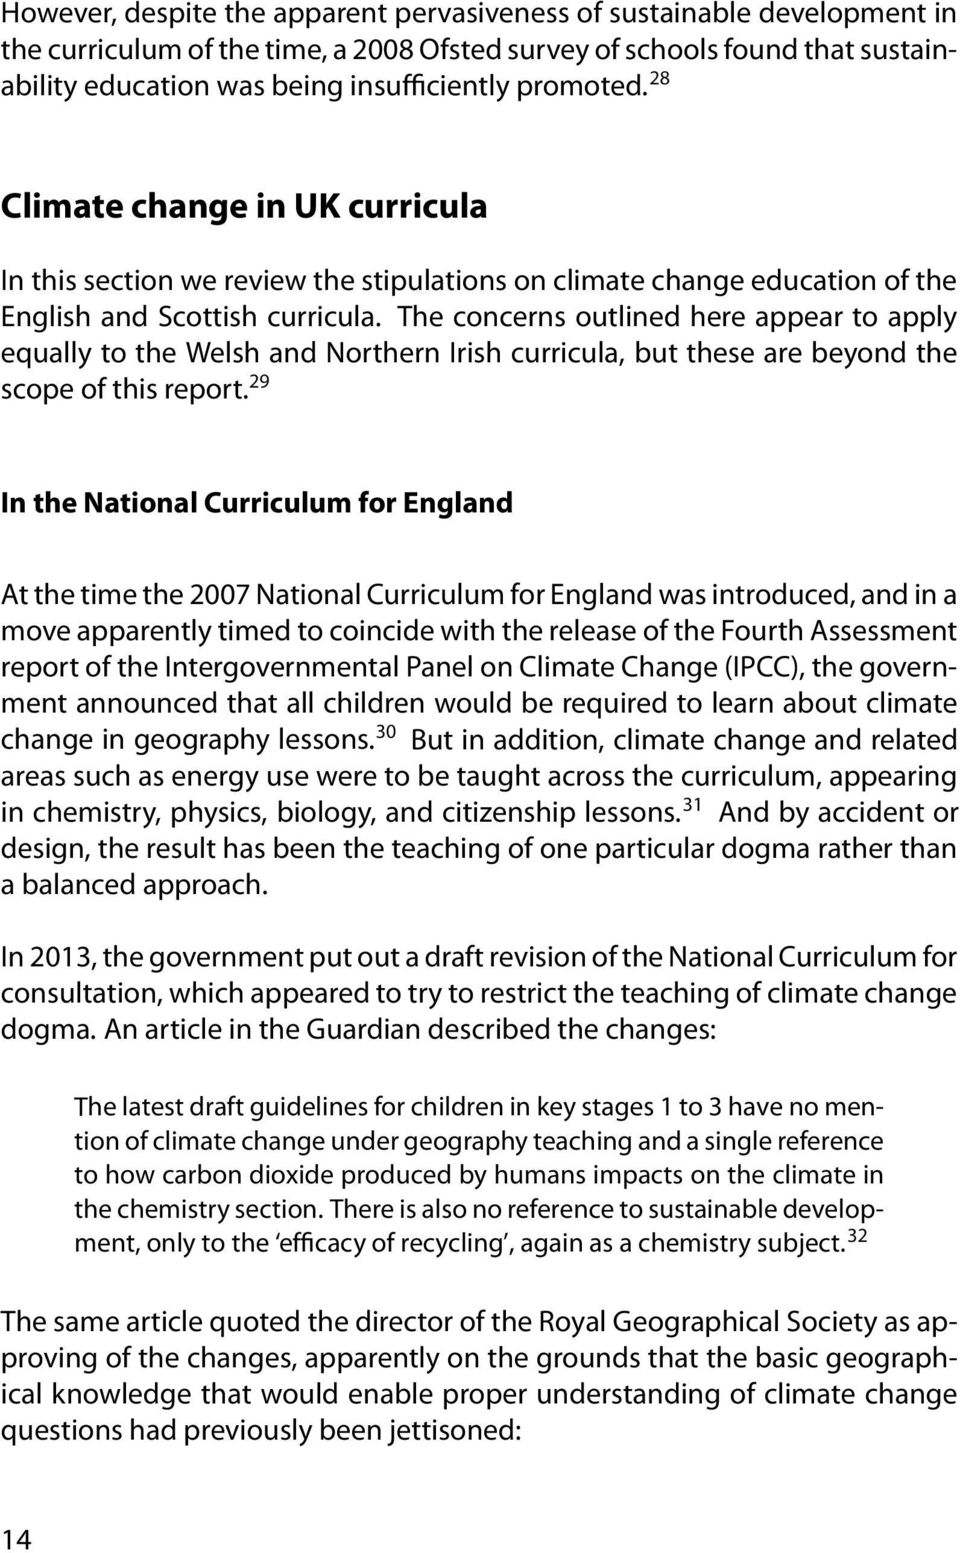 The concerns outlined here appear to apply equally to the Welsh and Northern Irish curricula, but these are beyond the scope of this report.